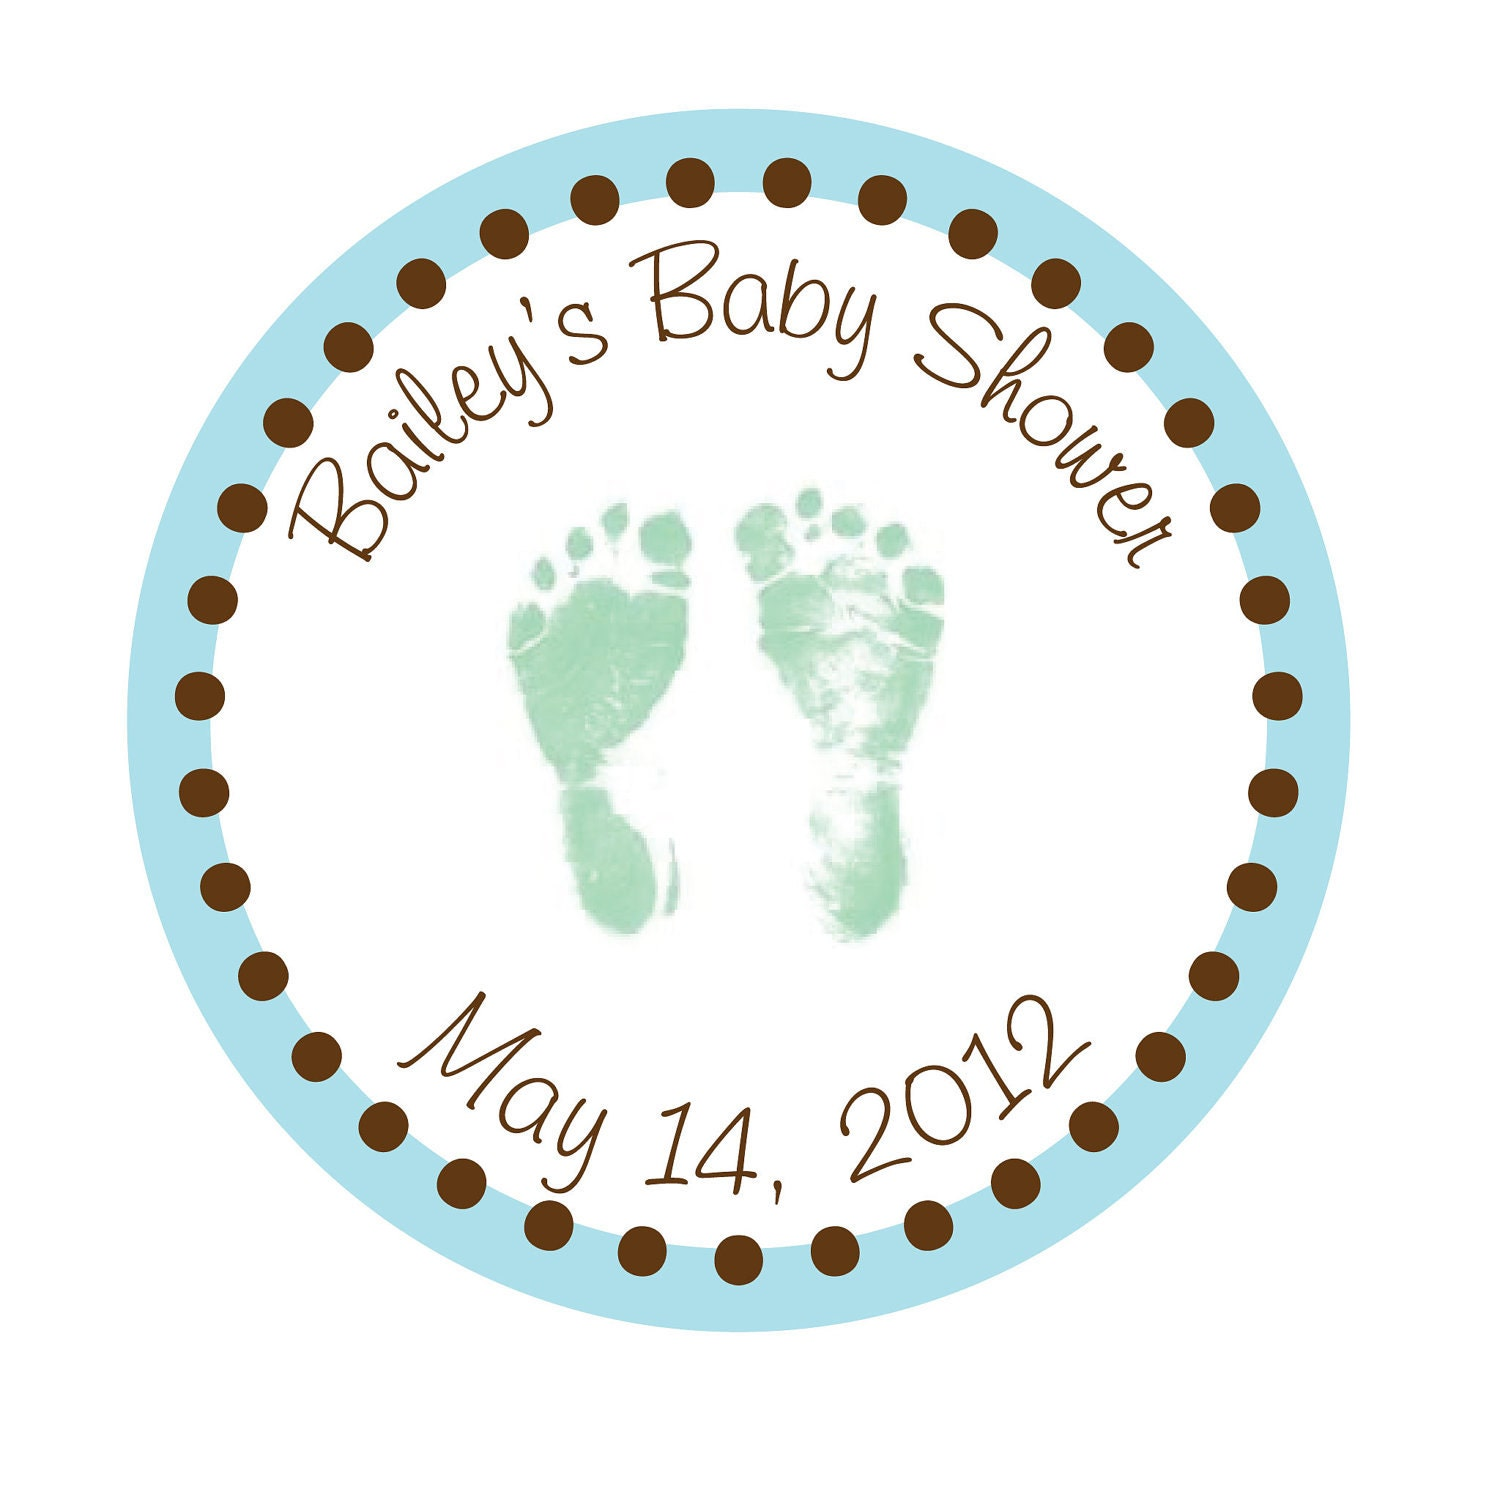 baby shower label template for favors - personalized stickers baby feet baby shower by simplysweetness